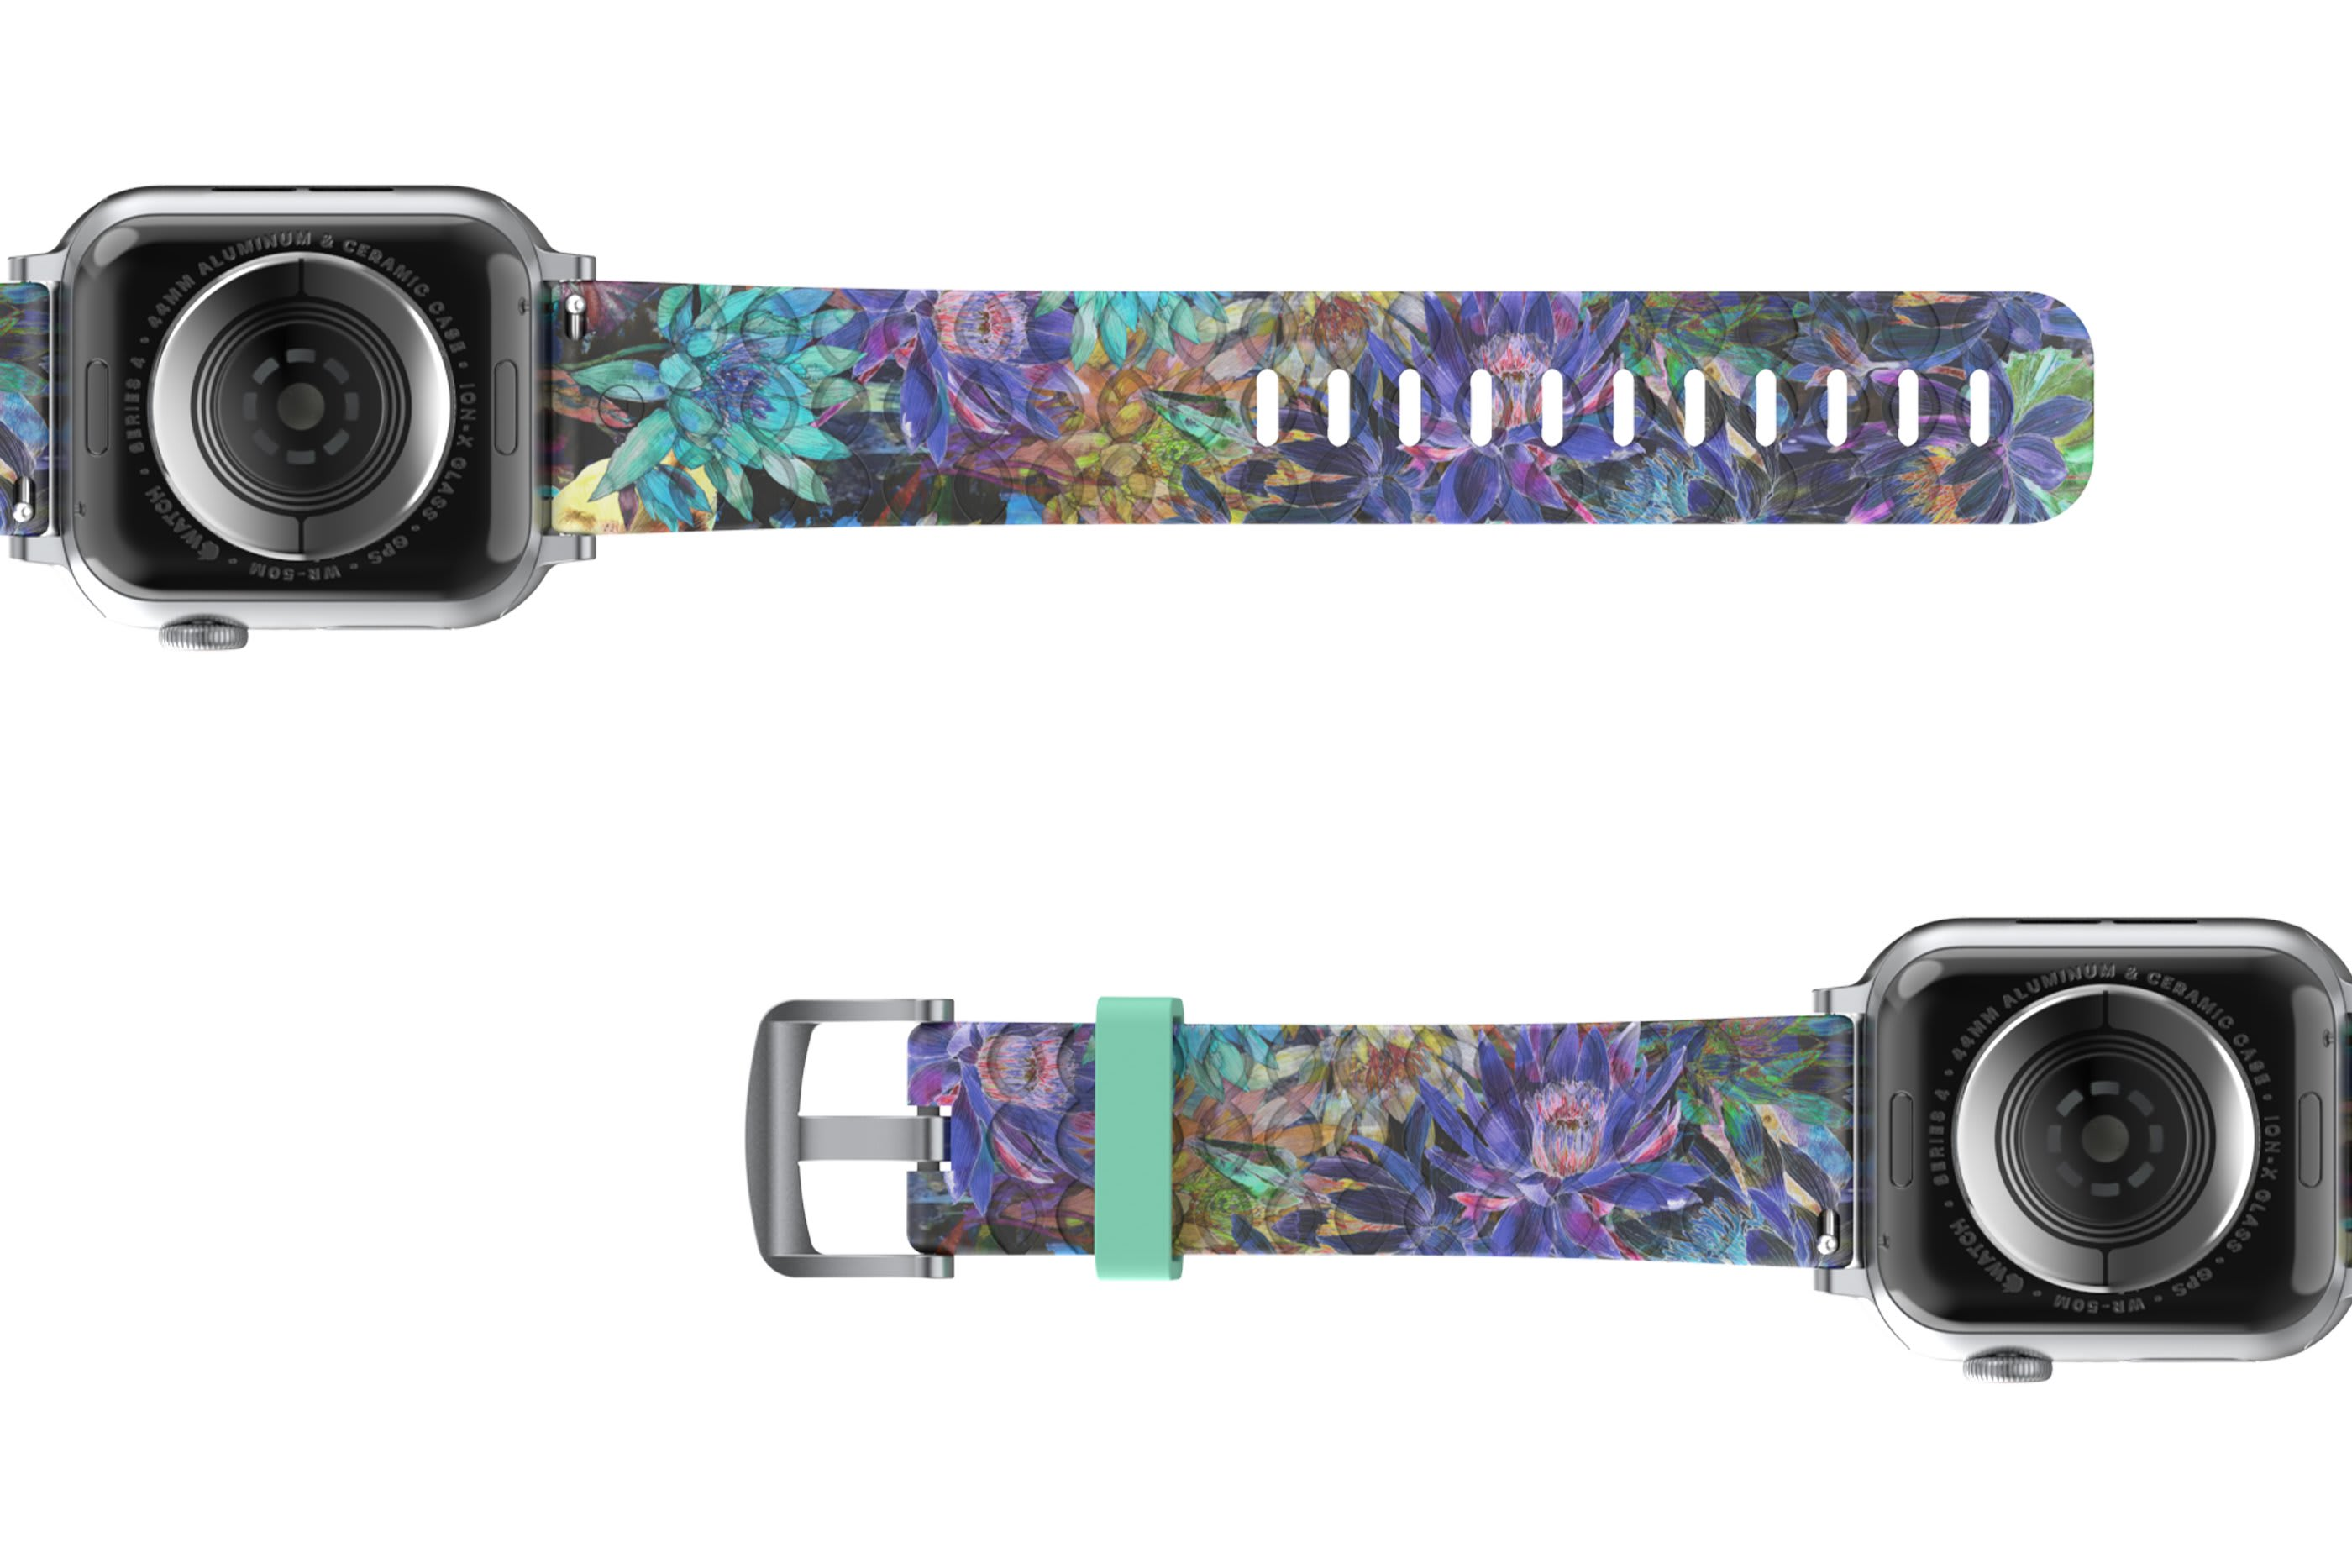 Twilight Blossom Apple Watch Band with silver hardware viewed bottom up